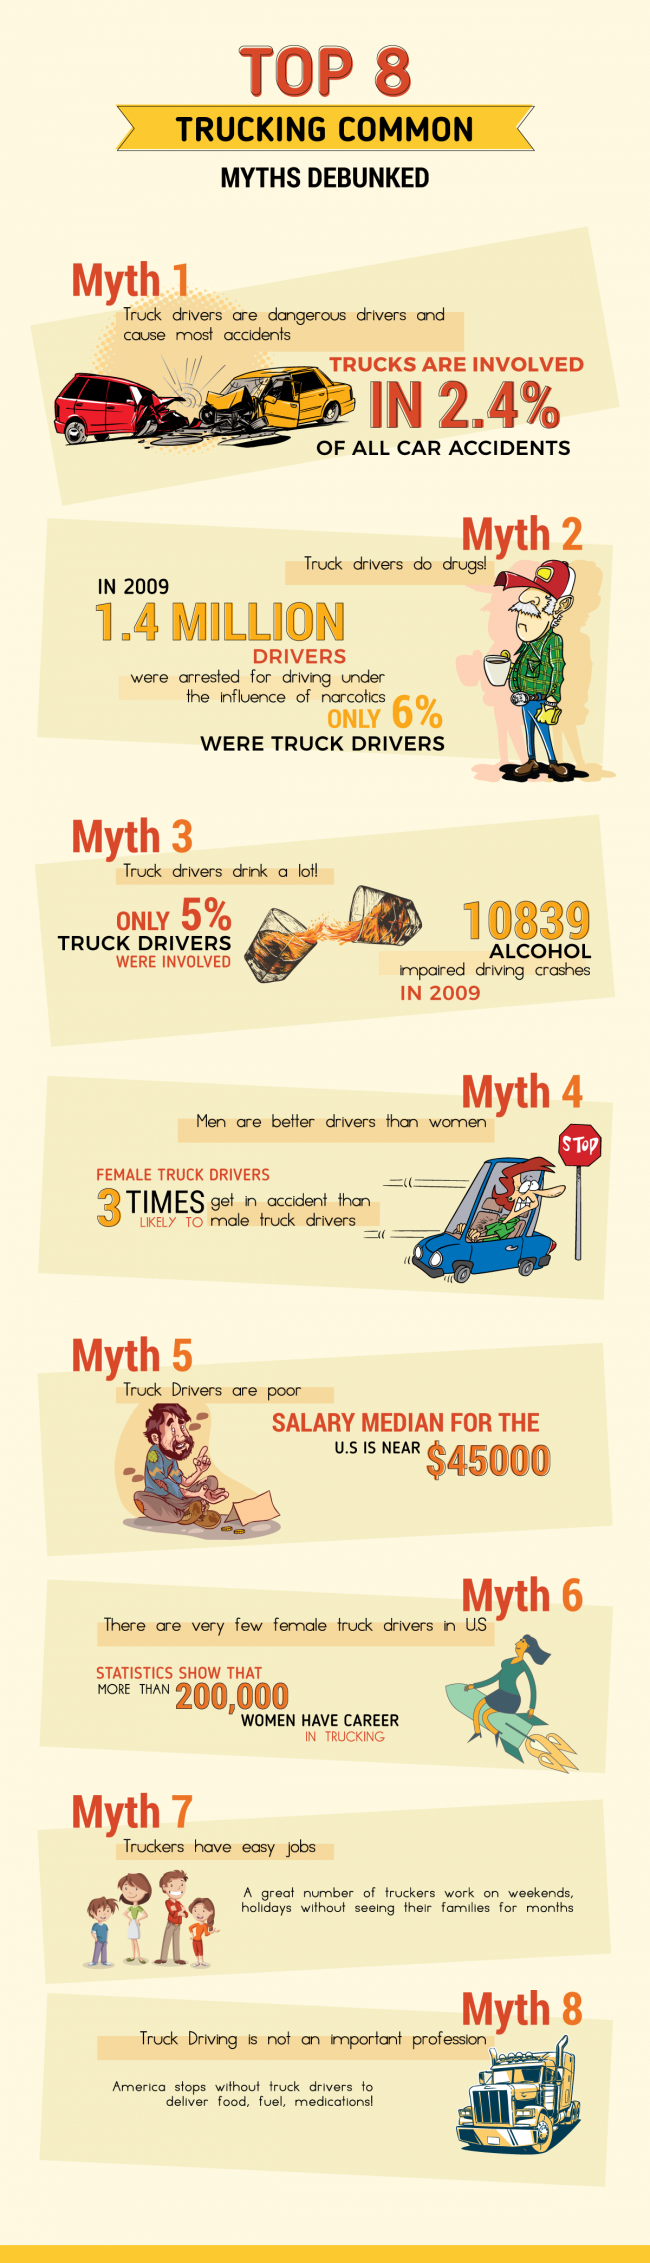 Top 8 Trucking Common Myths Debunked